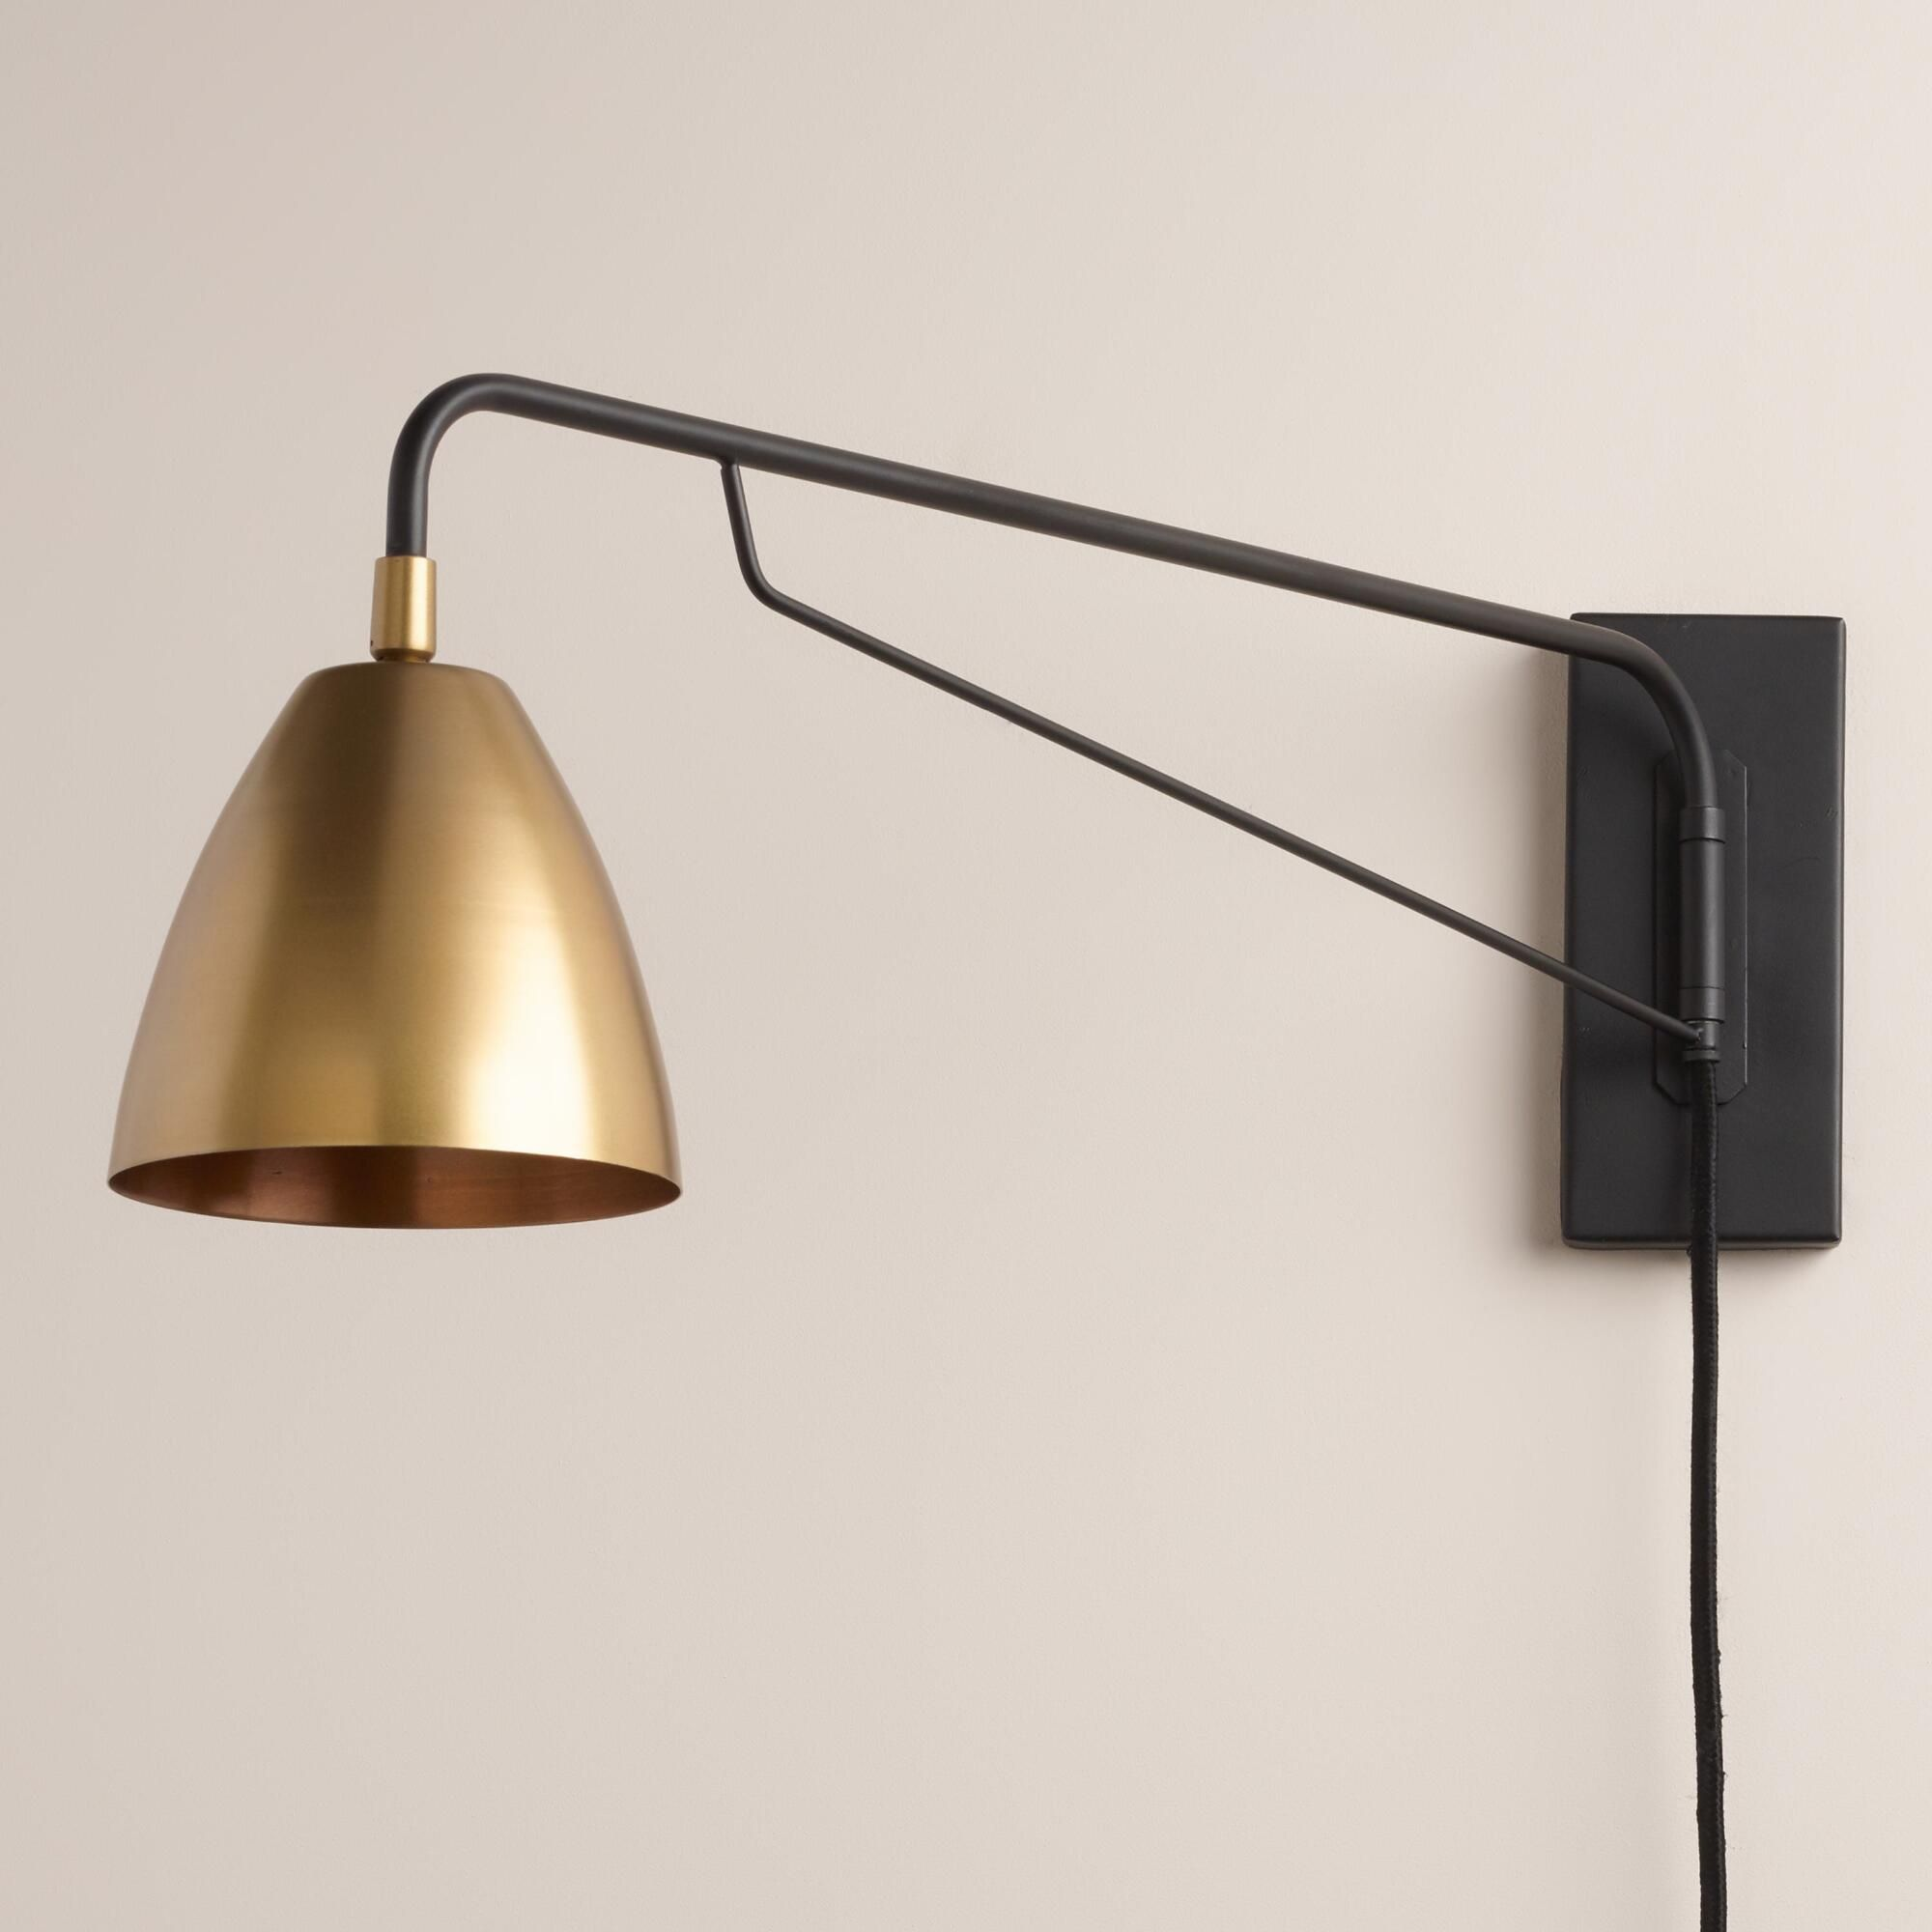 Modern Bedside Lights Crafted With A Pivoting Arm And Adjustable Antique Brass